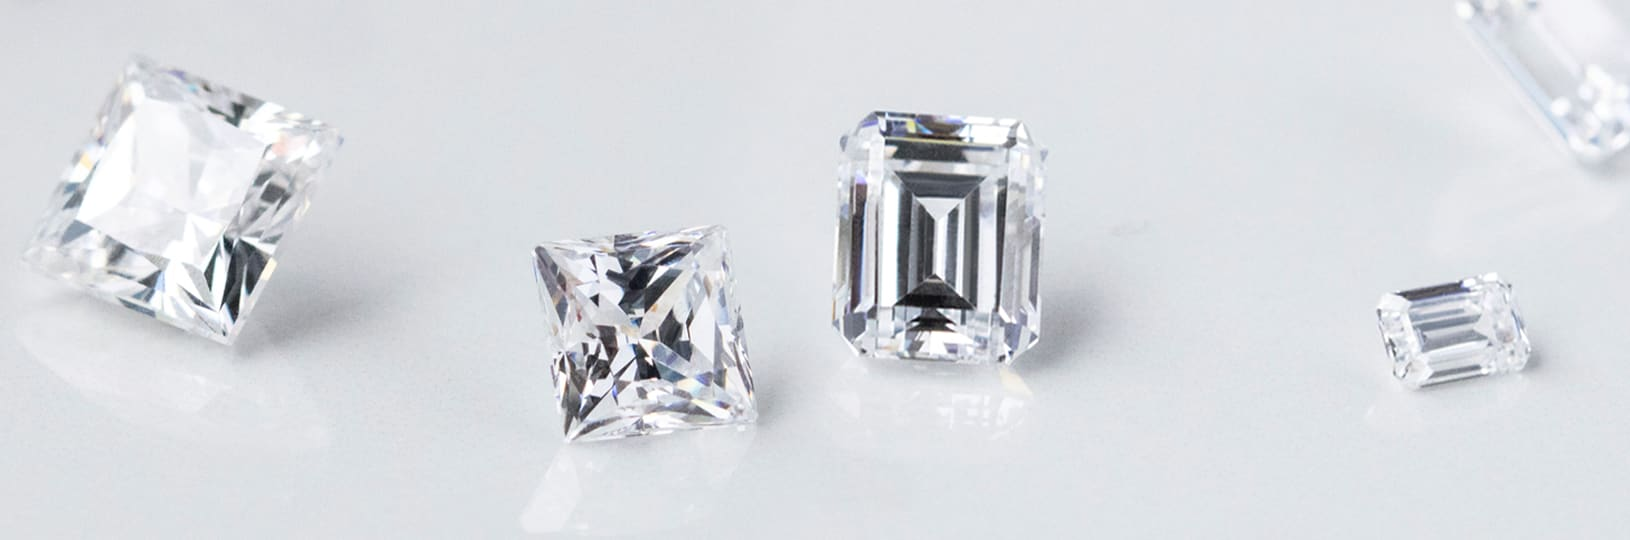 Several loose diamond simulants in different cuts and sizes